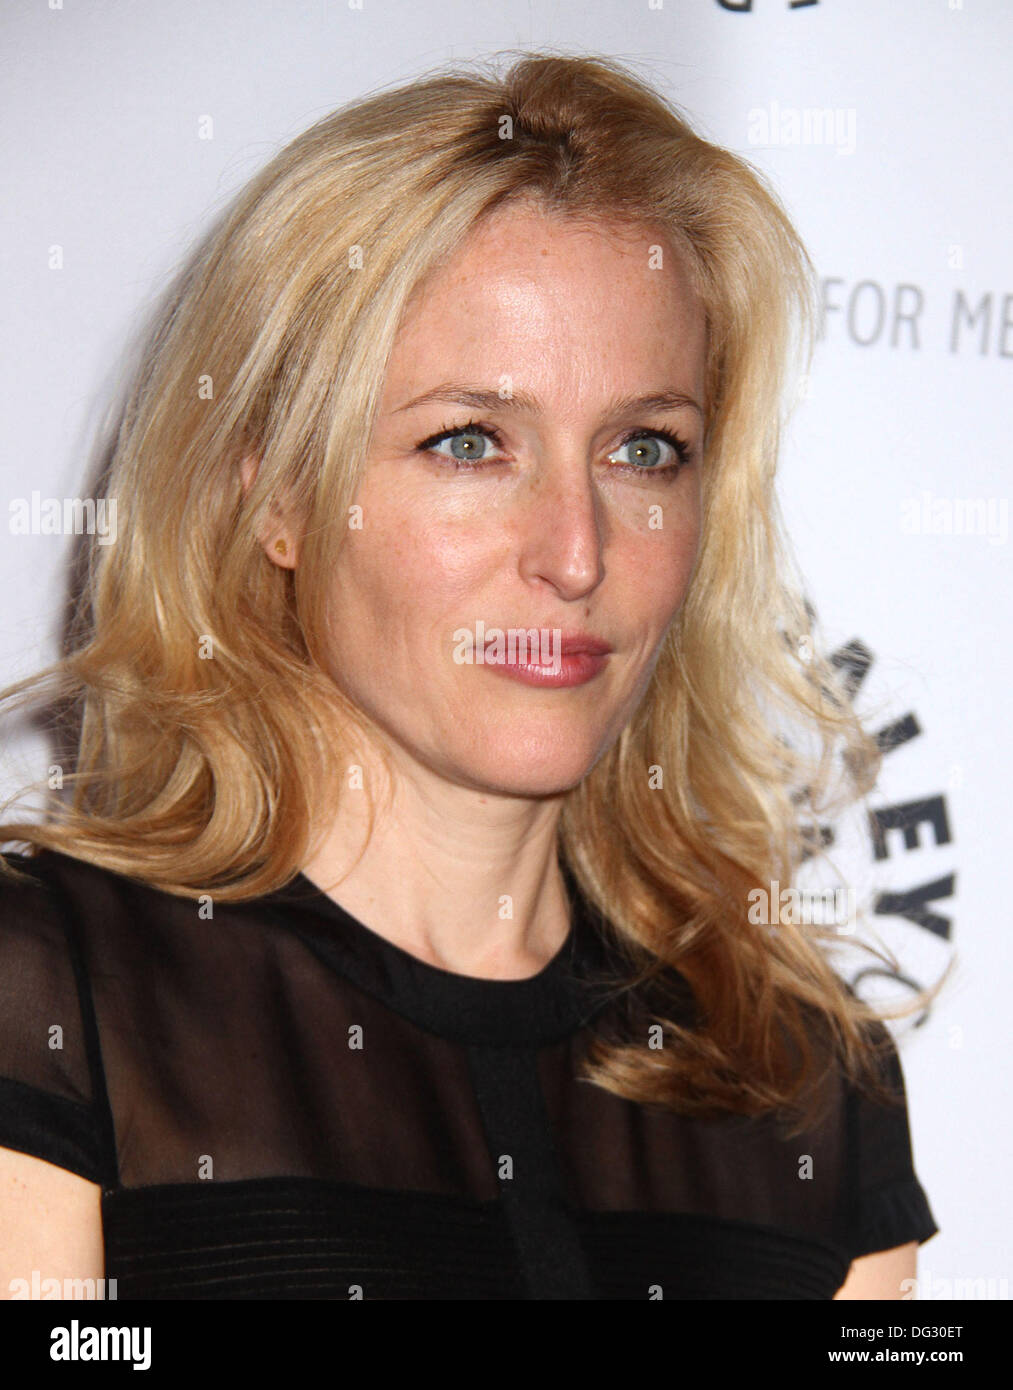 New York, USA. 12th Oct, 2013. Actress GILLIAN ANDERSON attends 'The Truth is Here' X Files Panel Discussion held at the Paley Center. © Nancy Kaszerman/ZUMAPRESS.com/Alamy Live News - Stock Image